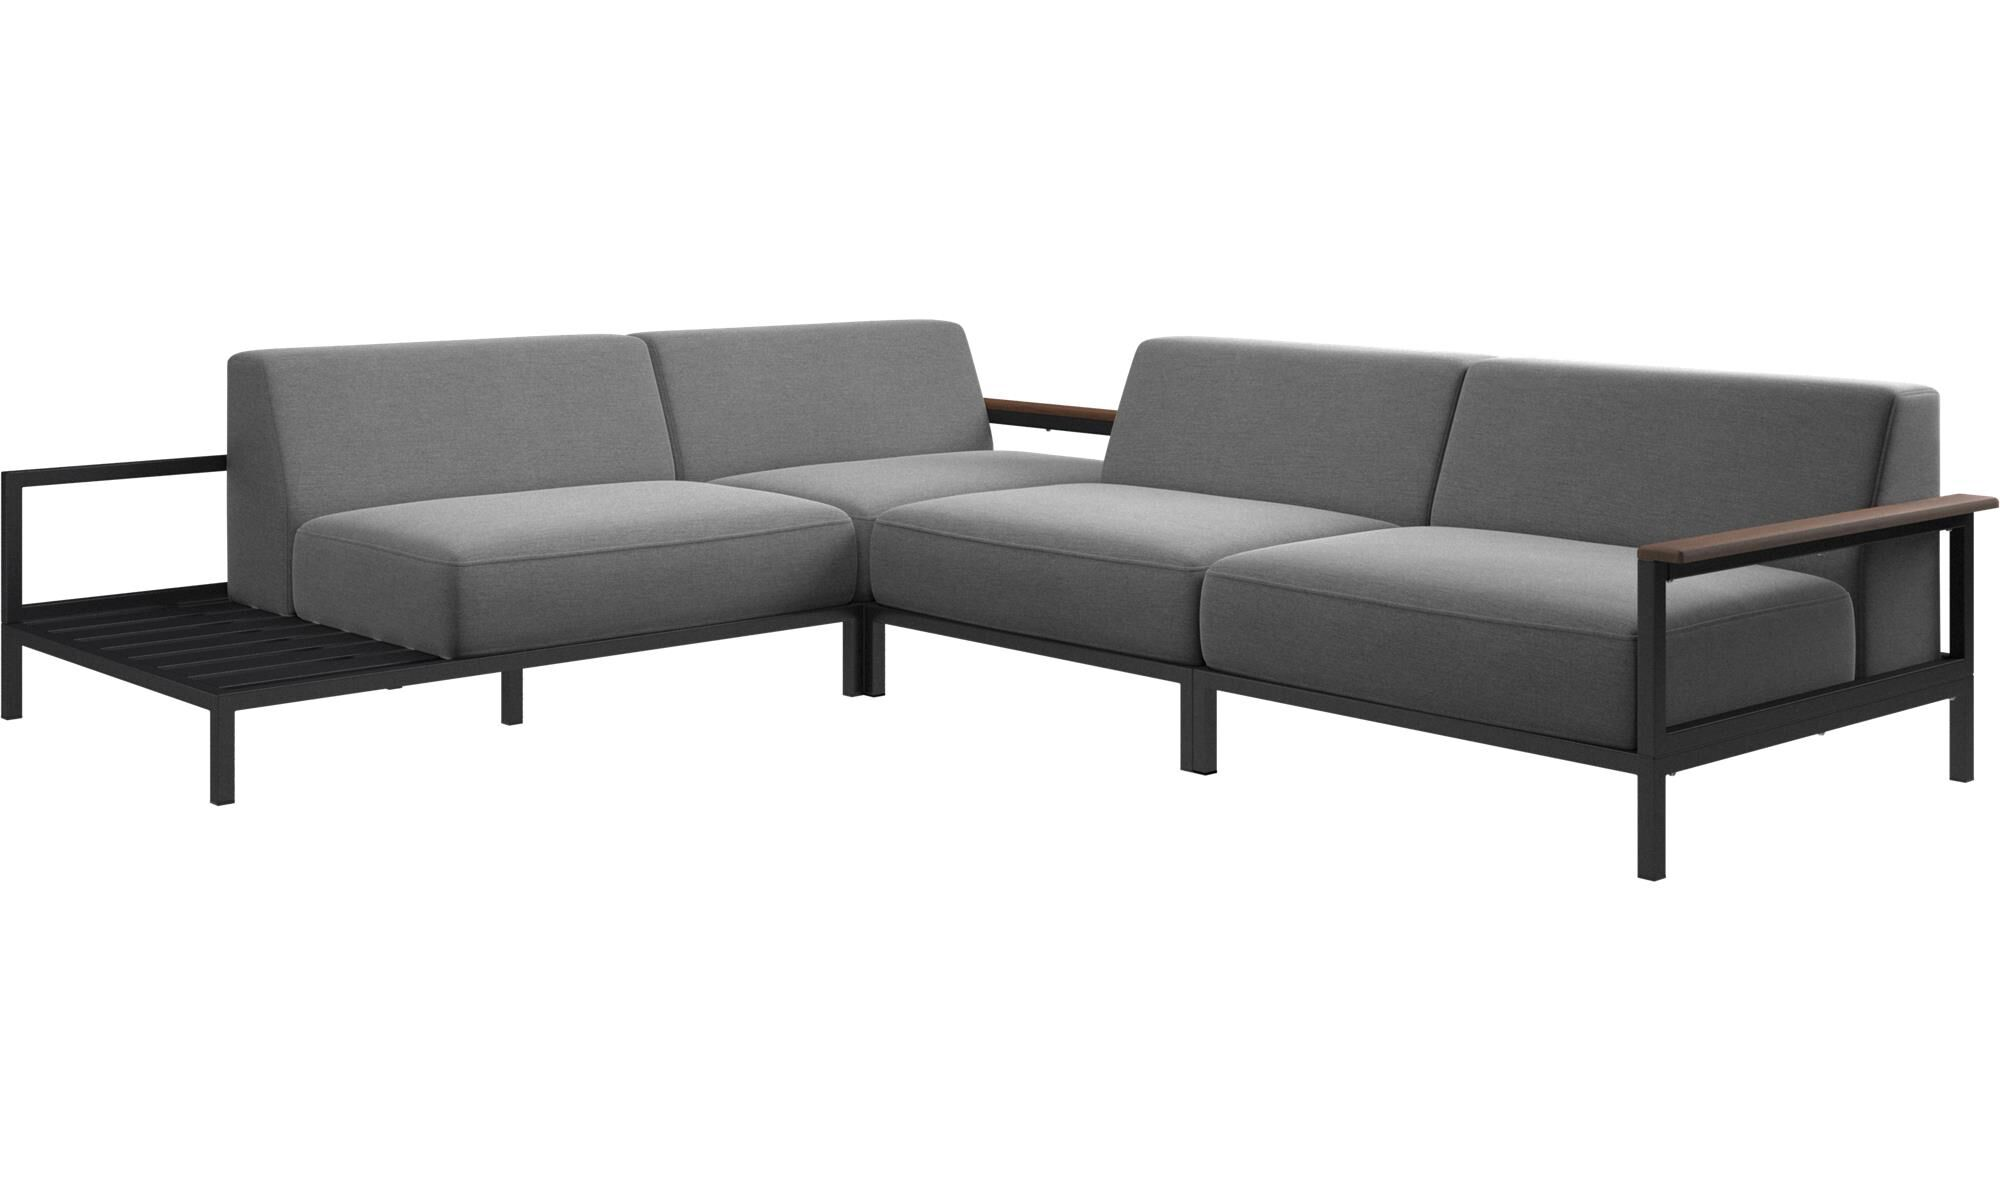 Charmant Outdoor Sofas   Rome Outdoor Sofa   Gray   Fabric